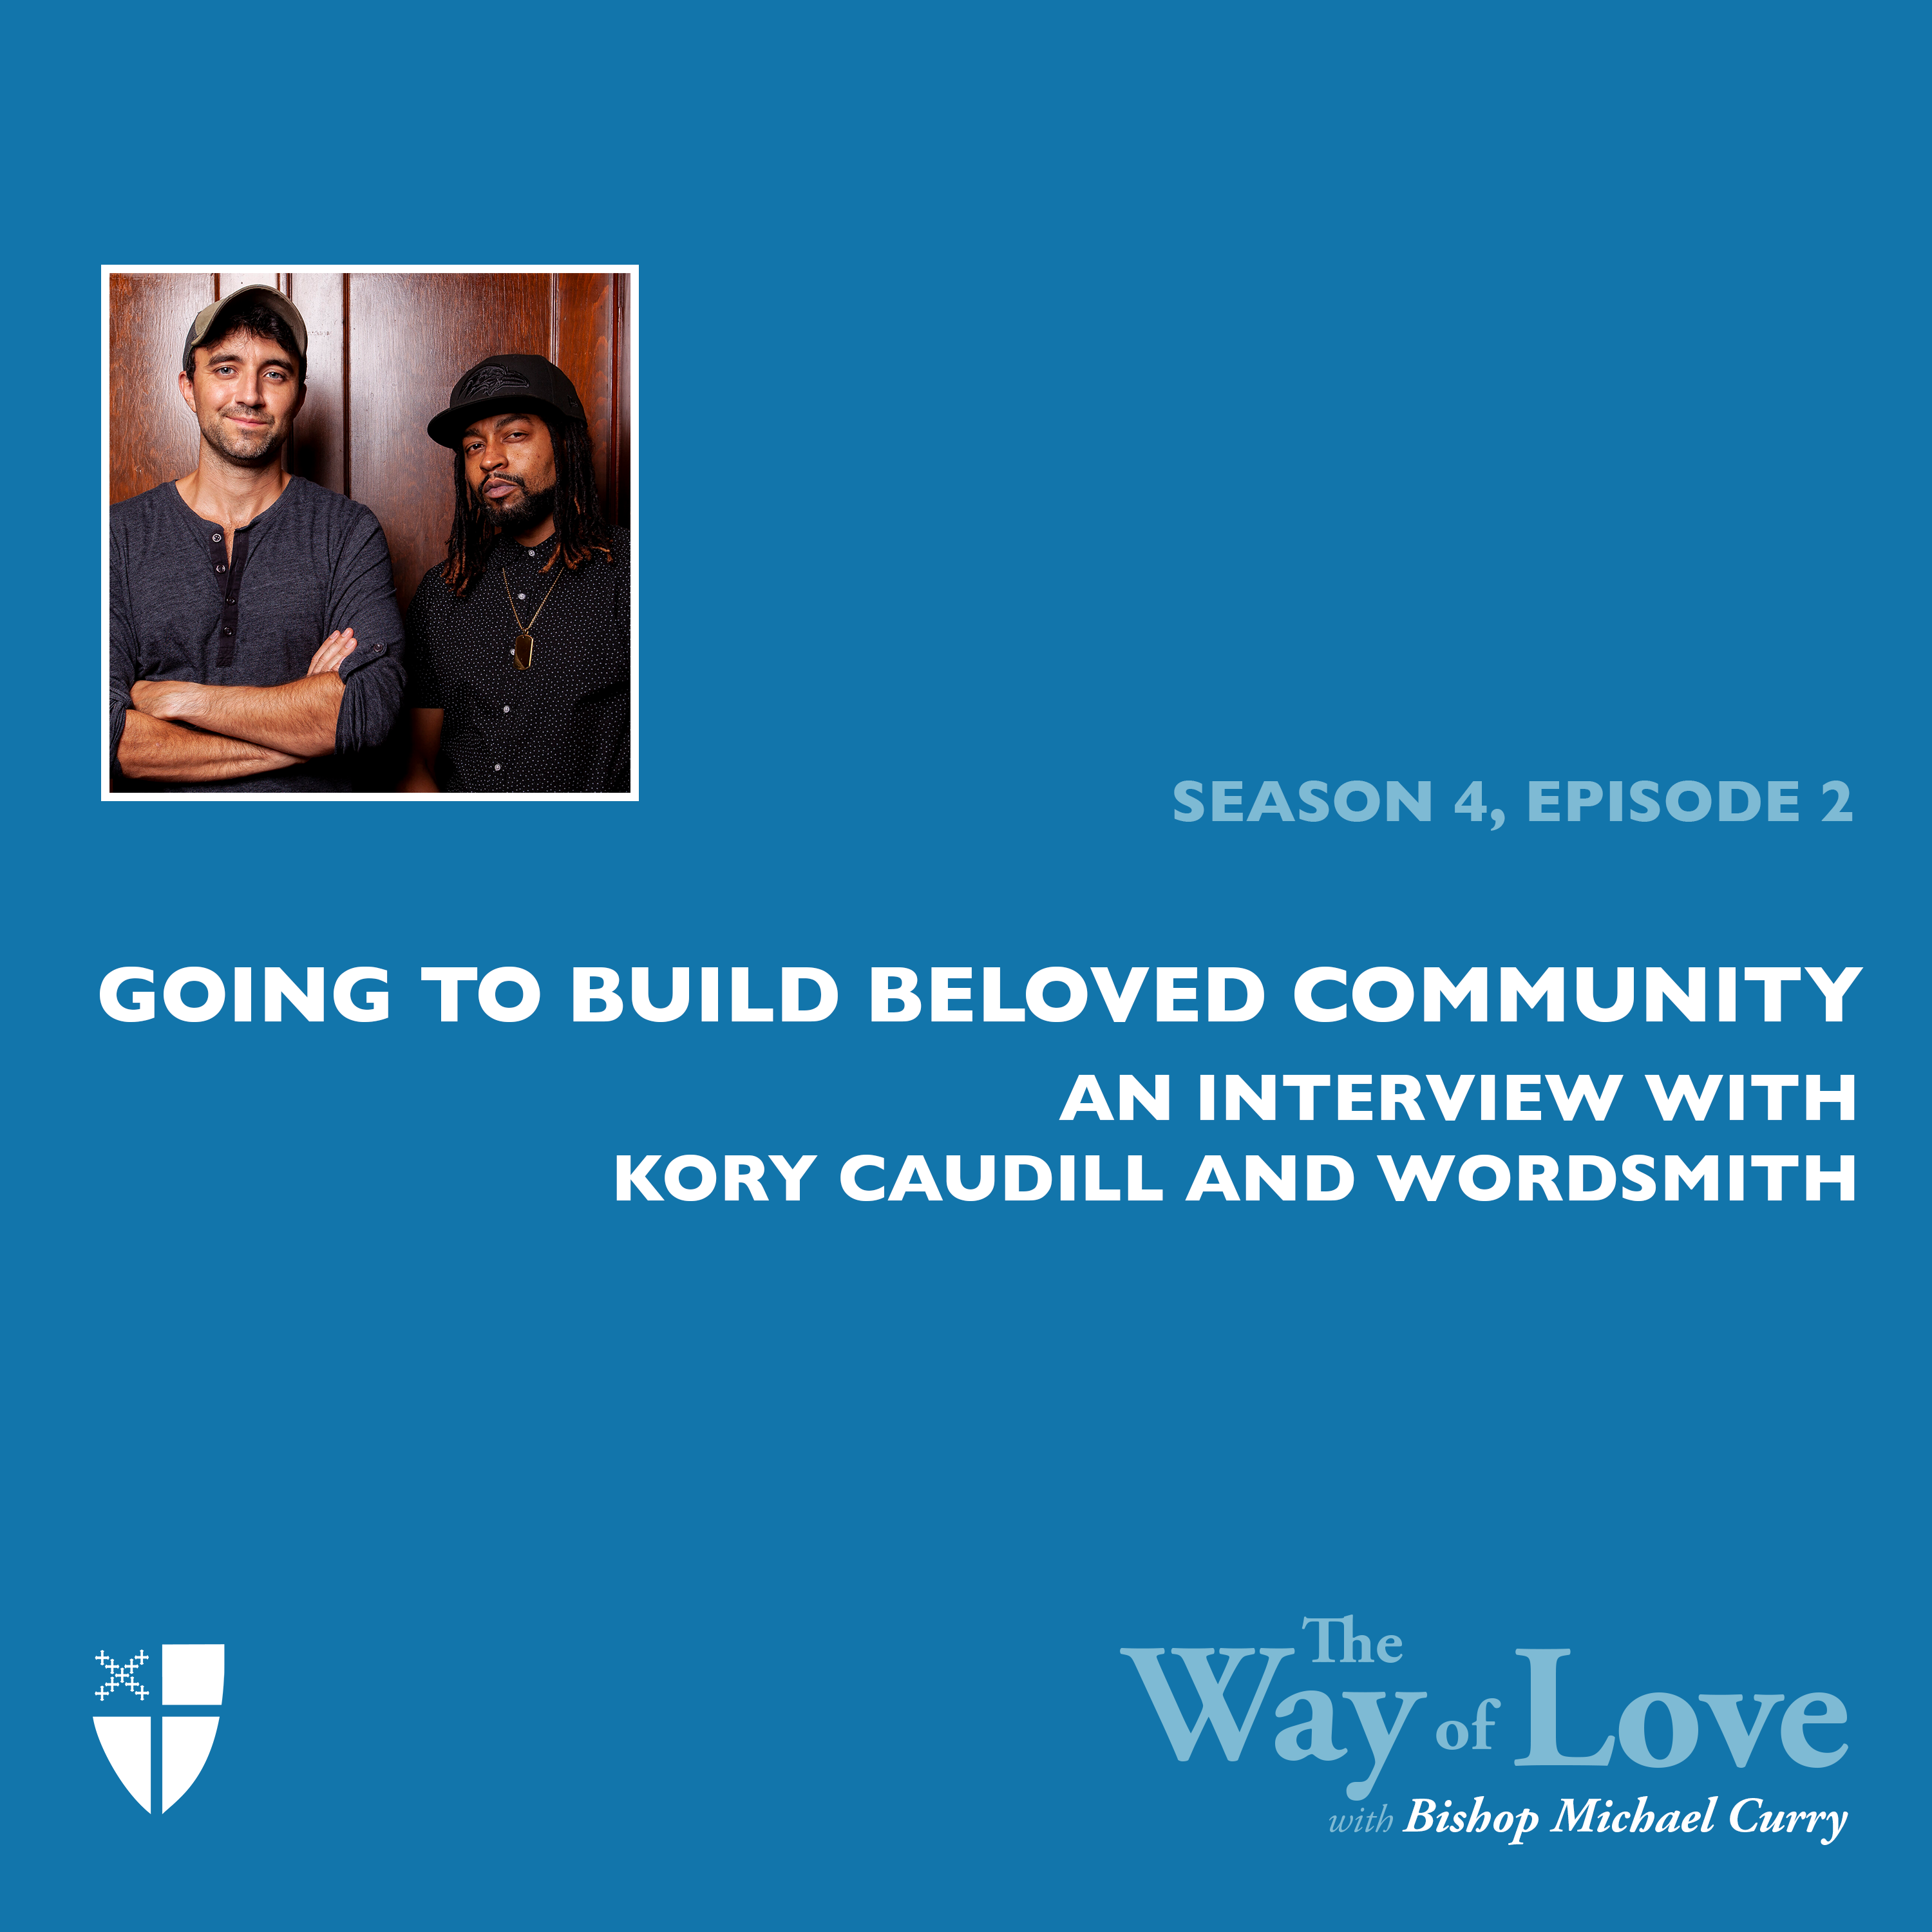 Going to Build Beloved Community with Kory Caudill & Wordsmith